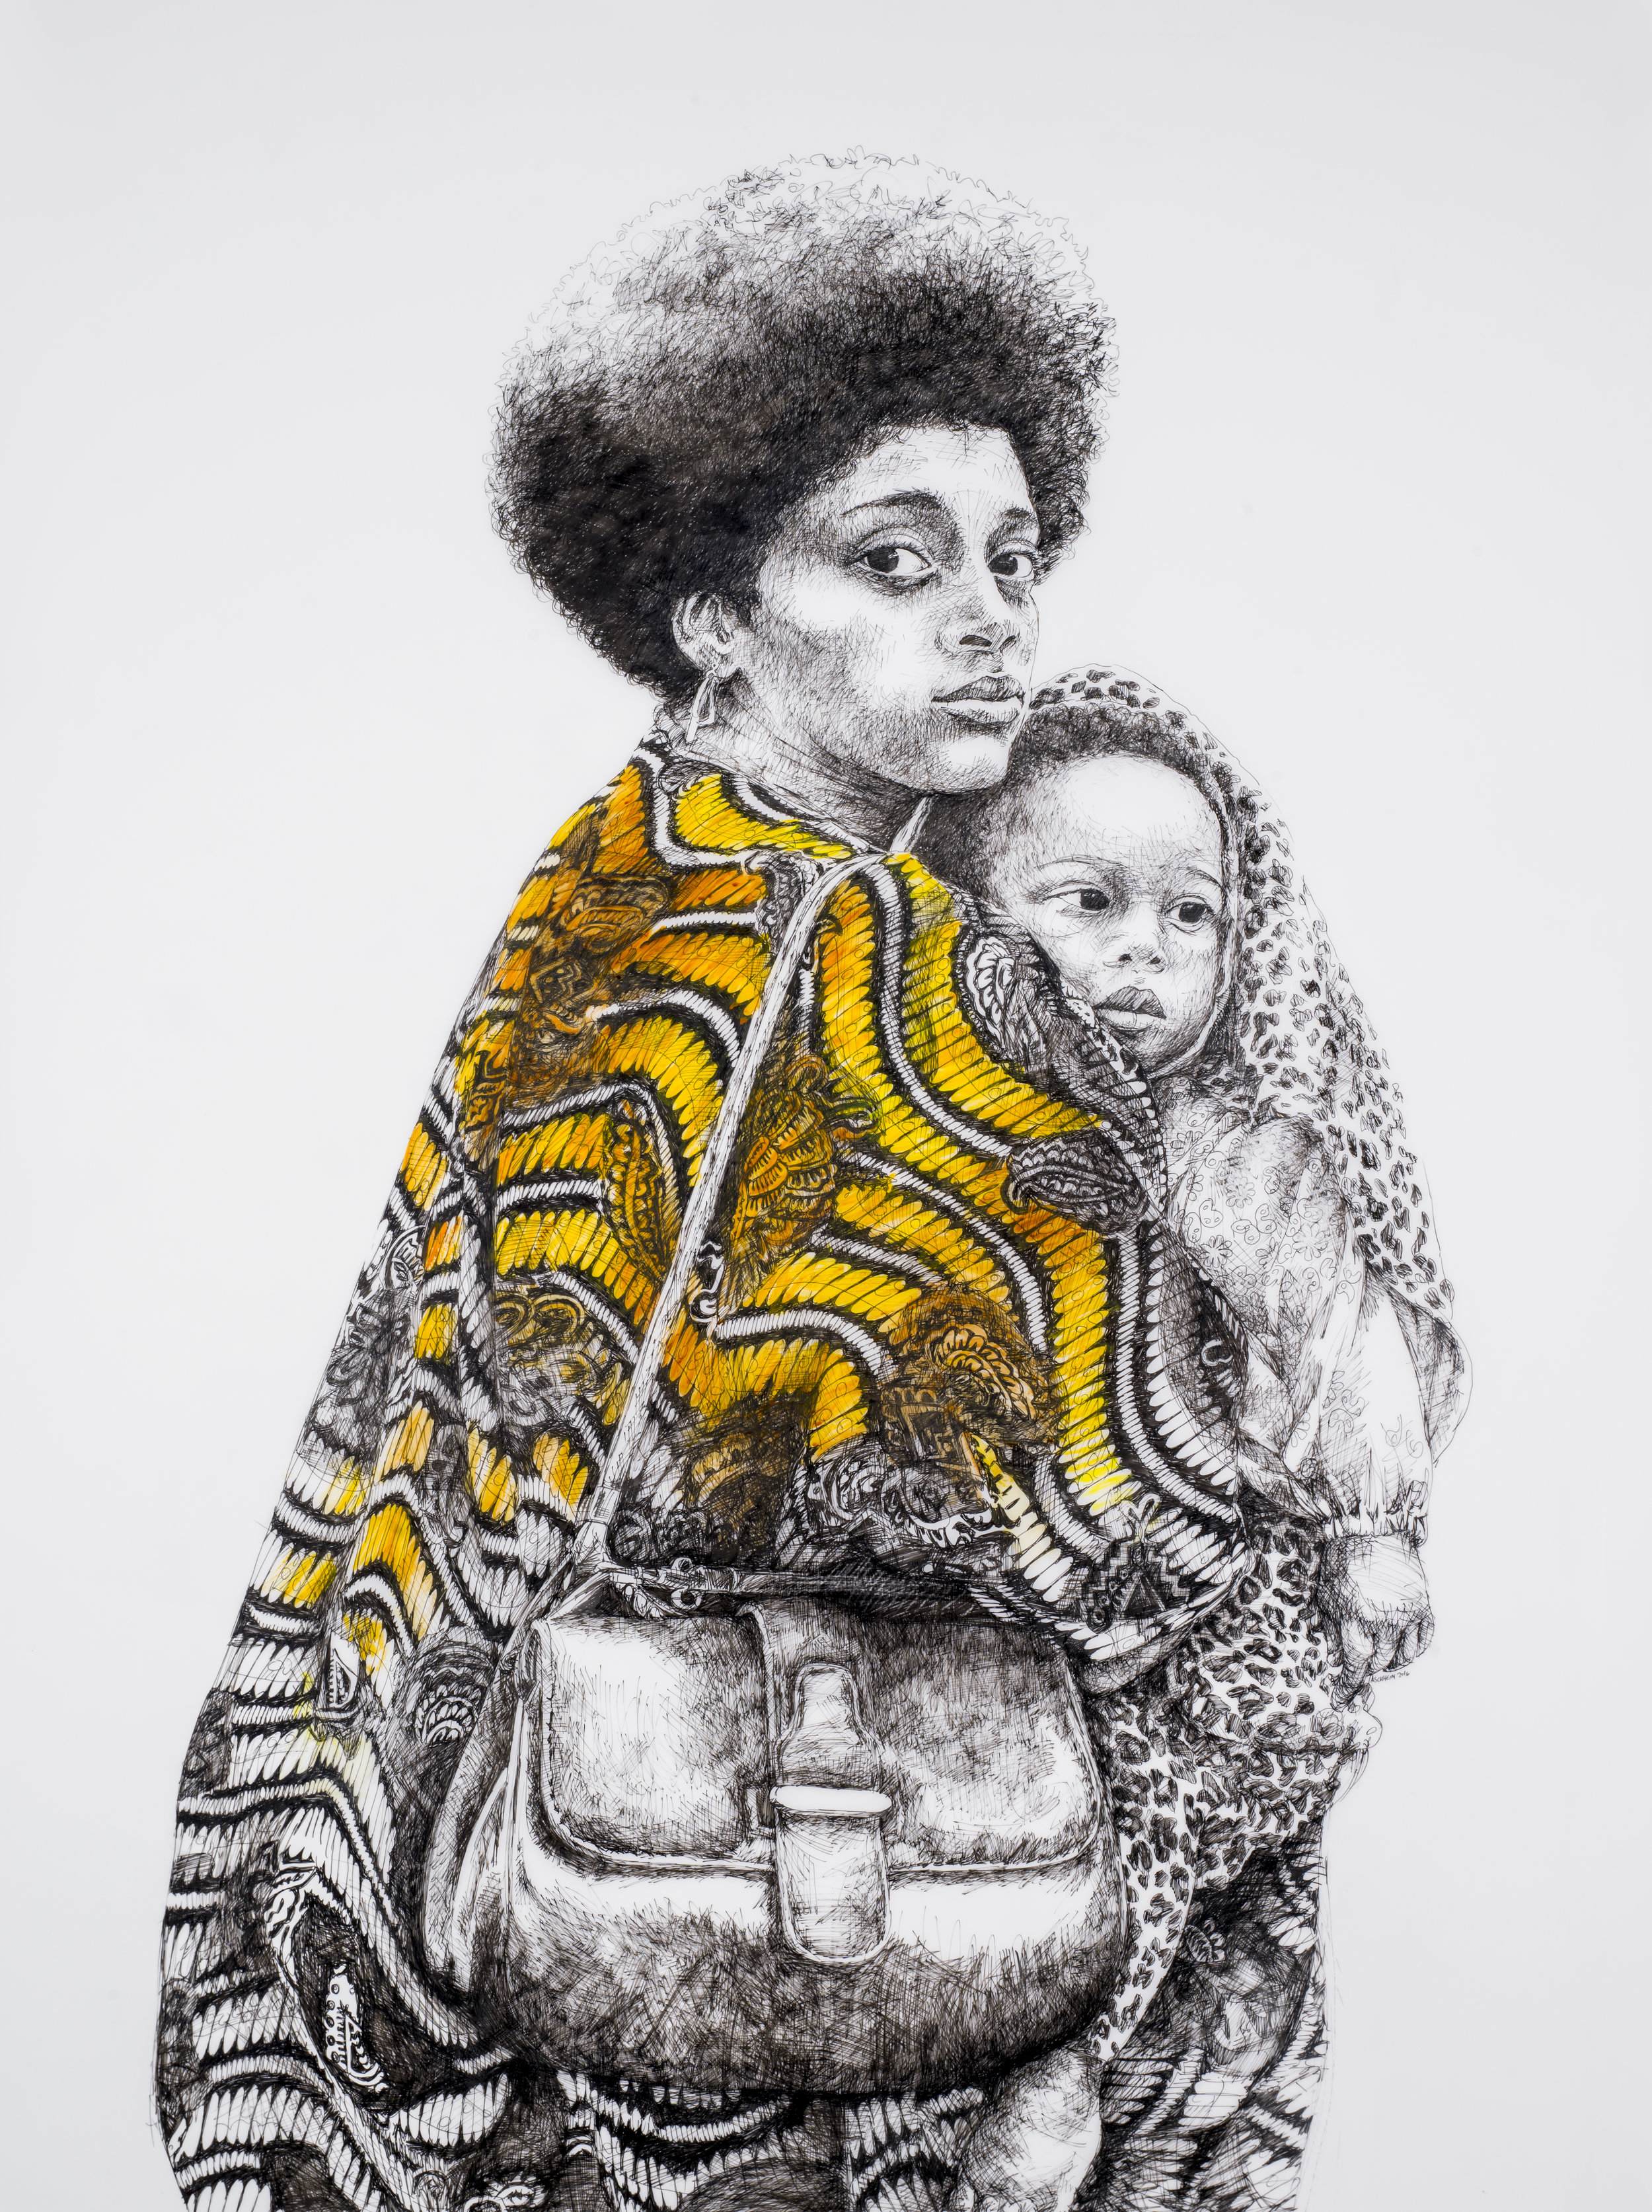 """Deborah Aschheim, Mother and Child, Free Huey Rally, De Fremery Park, Oakland (after Ruth Marion-Baruch) 2017. The Black Panther Party formed in Oakland in 1966 demanding an end to oppression of African Americans, and calling for housing, education, jobs, and justice. """"The party is known mostly for its confrontational stances; and that's a good thing – to be confrontational against evil and violence. The kinds of problems that the black community suffers: unequal levels of imprisonment, unequal levels of access to resources, poor health. The Black Panther Party tried to model for the community some of the possible solutions that were not capitalist-oriented."""" Kathleen Cleaver, first Communications Secretary for the Black Panther Party.Image courtesy the artist and the San Francisco Arts Commission's Art on Market Street Program."""